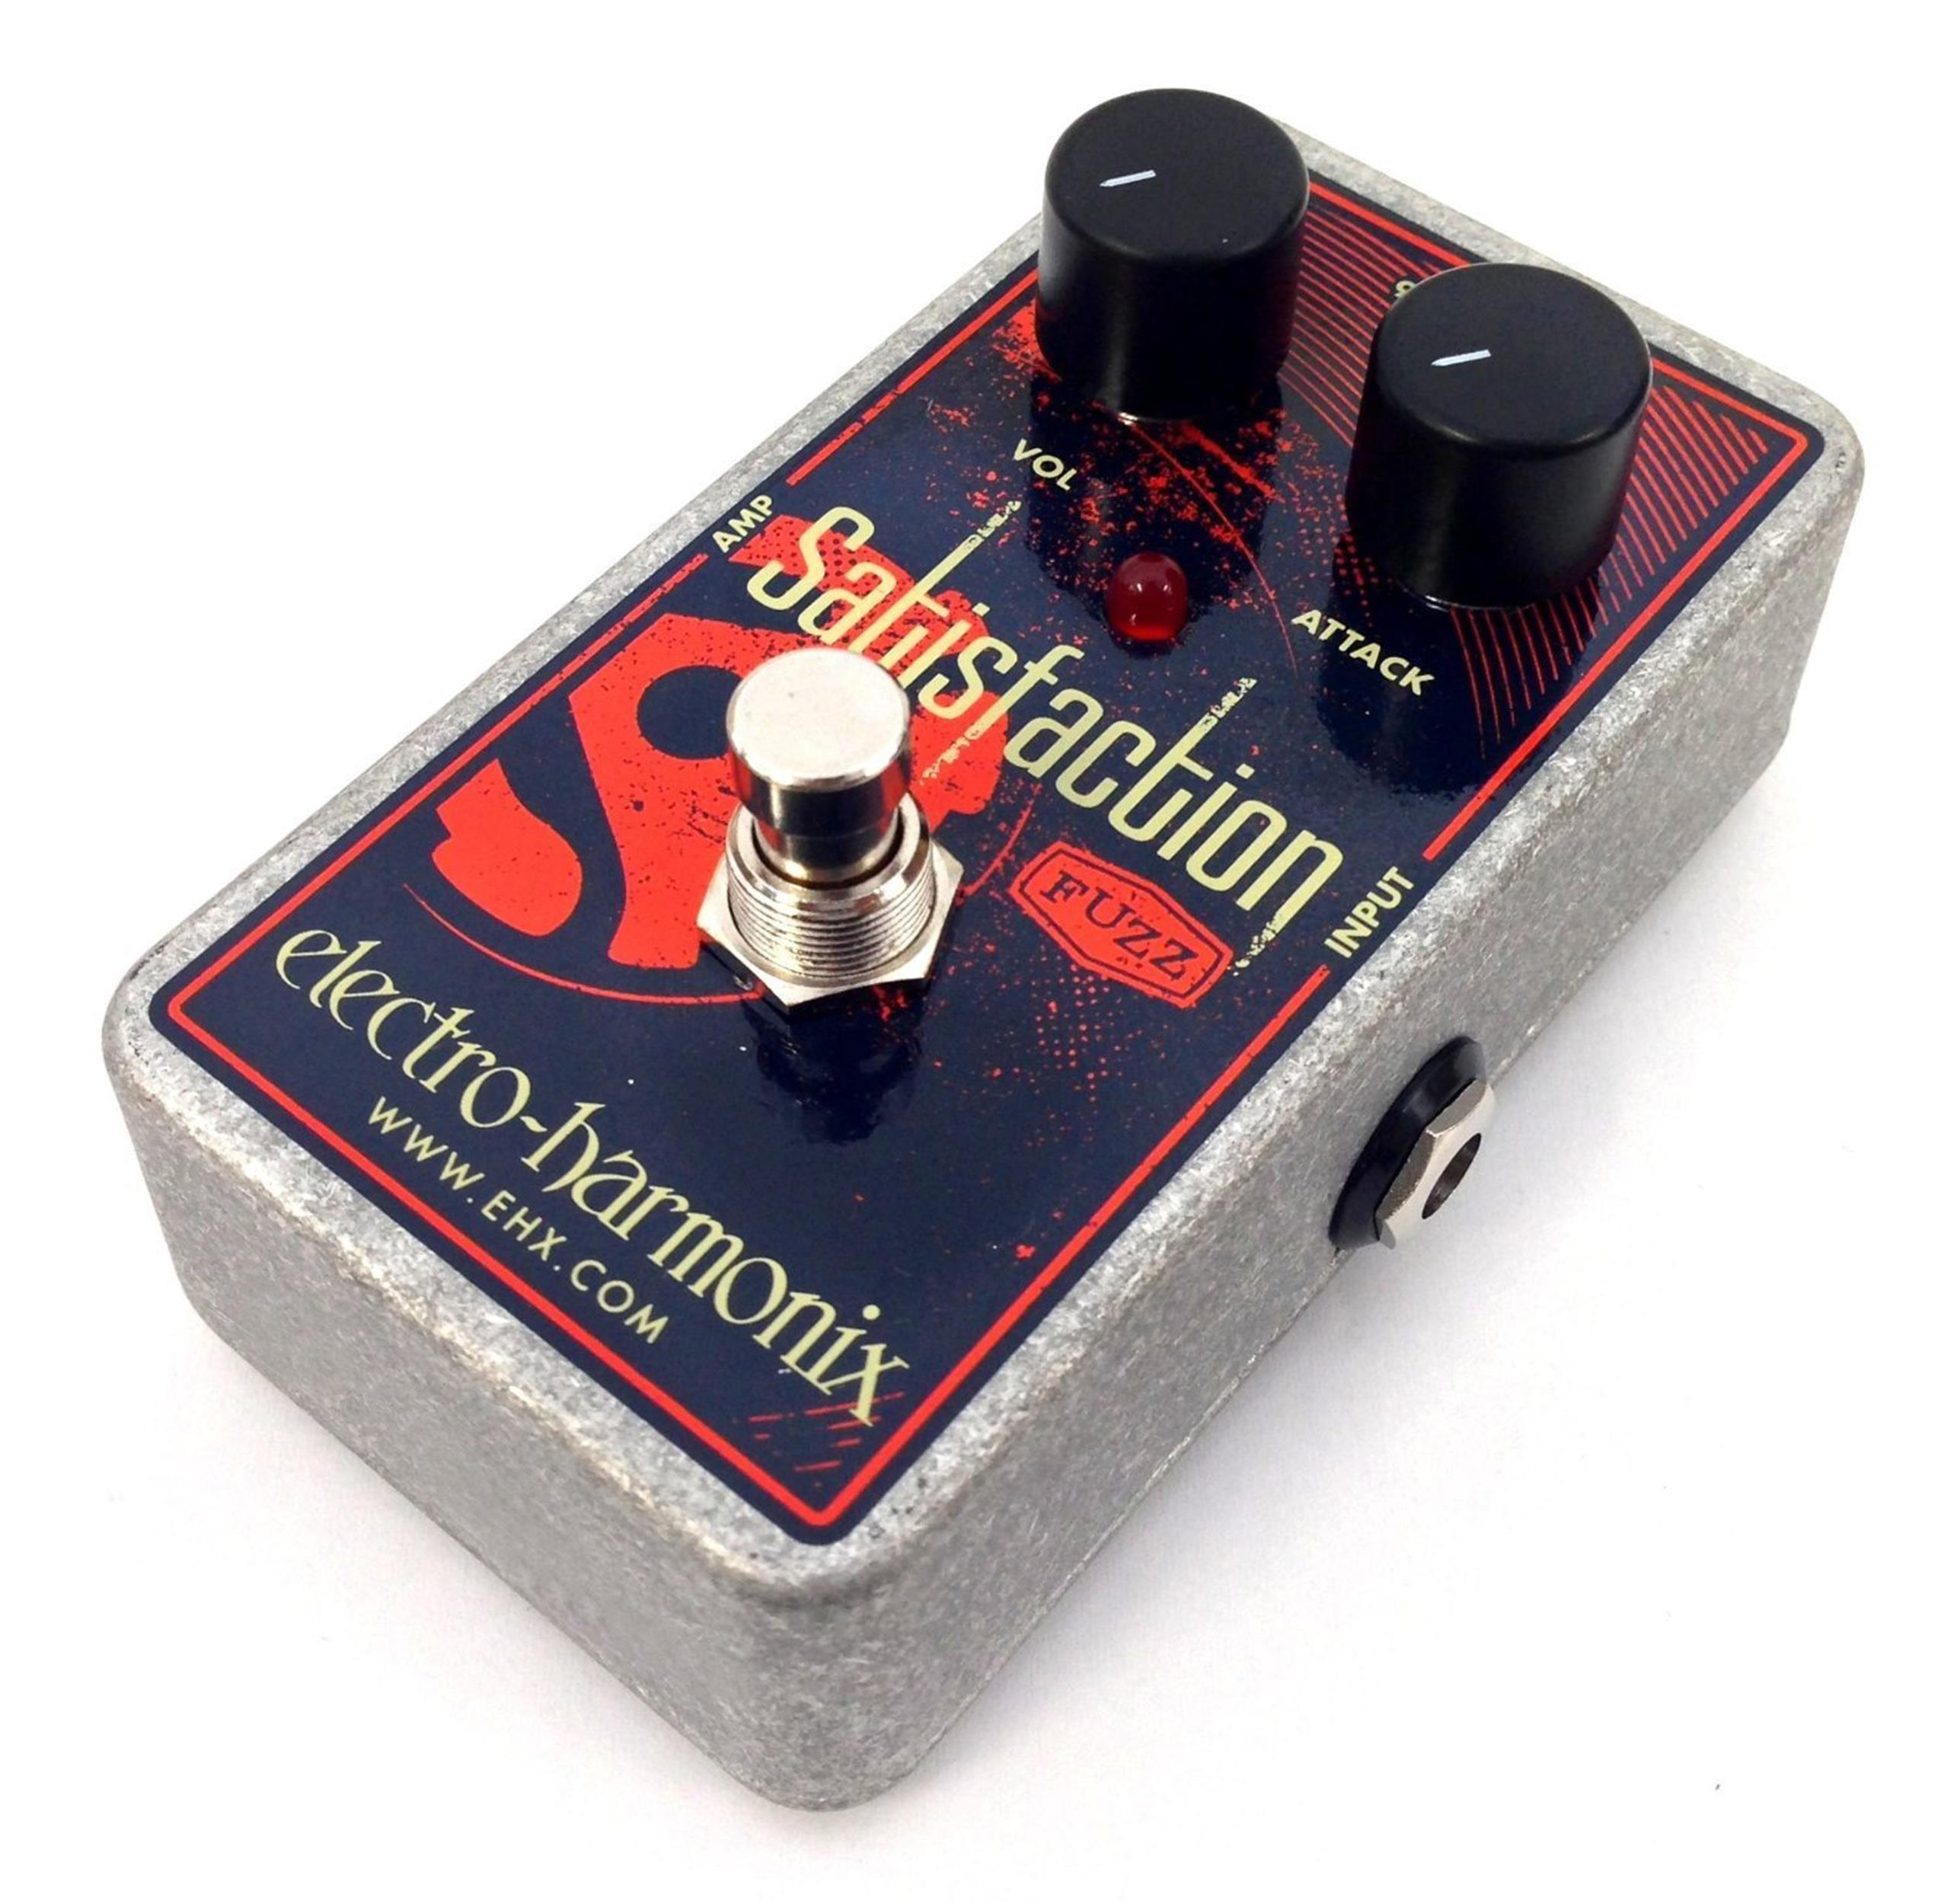 ELECTRO-HARMONIX-SATISFACTION-sku-11642